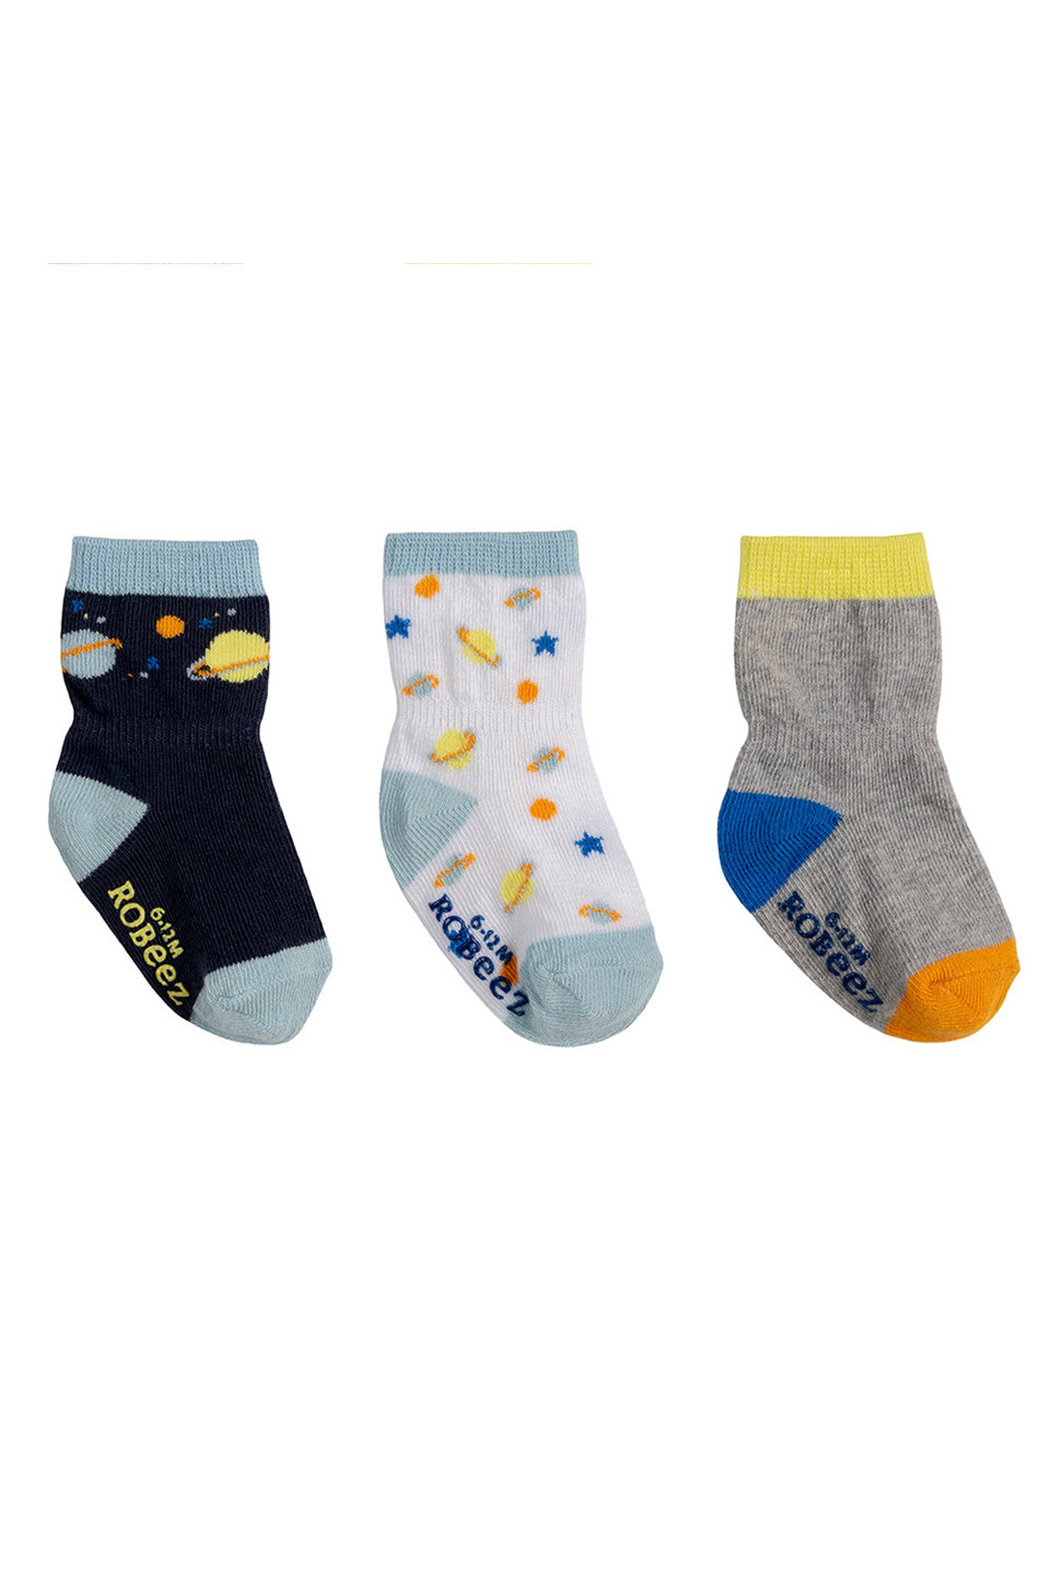 Robeez Cosmos Socks 3 Pack - Main Image